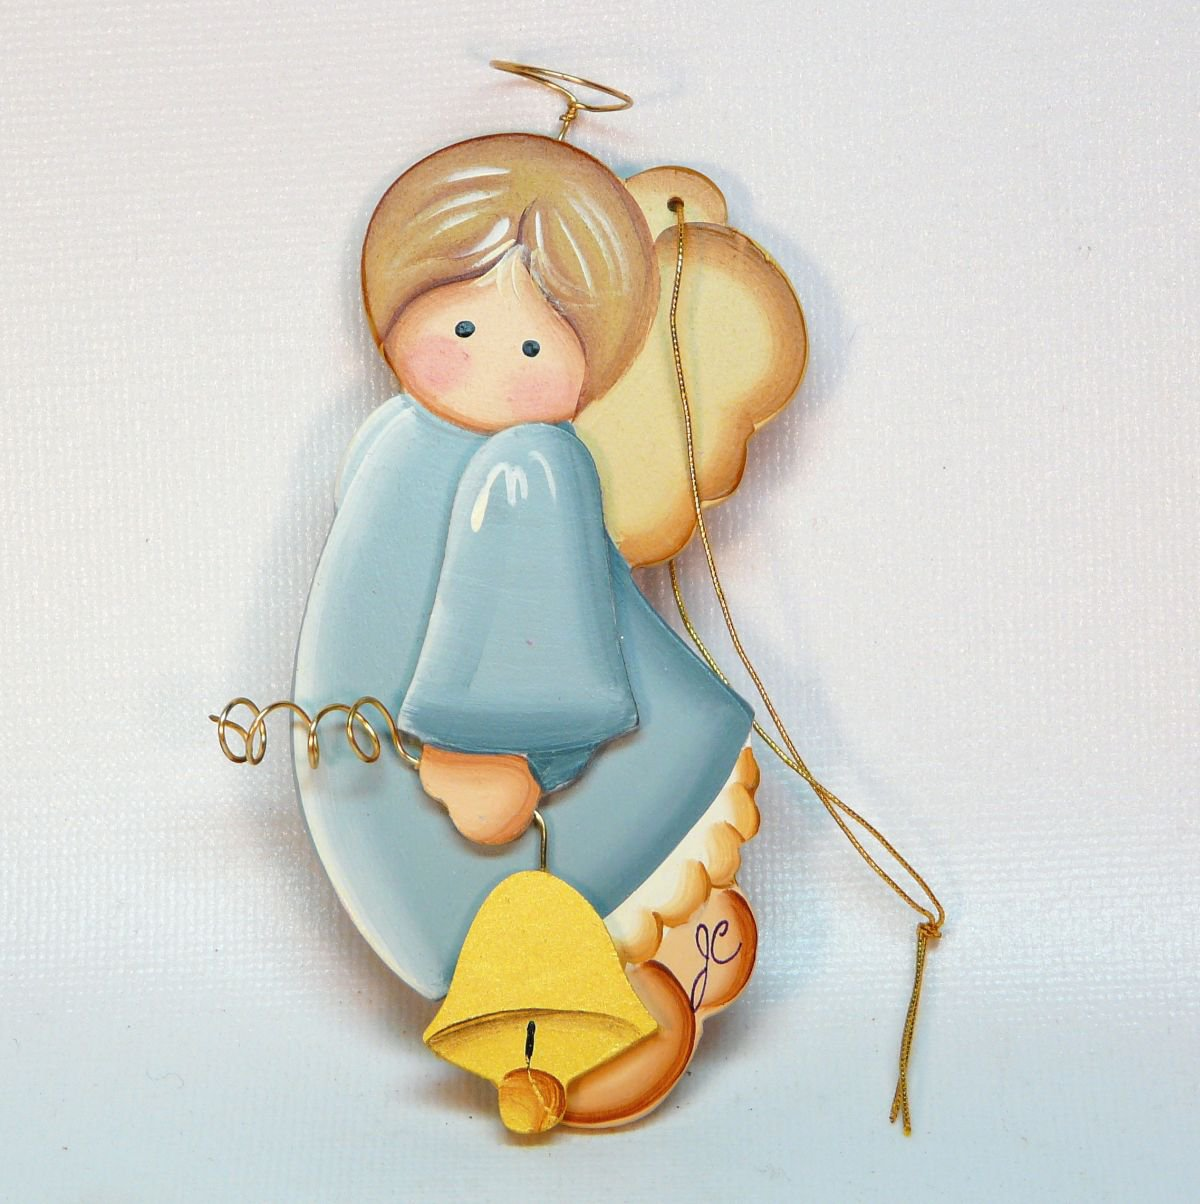 Hand Painted Wooden Angel Christmas Ornament Holding Bell Artist Signed Jc